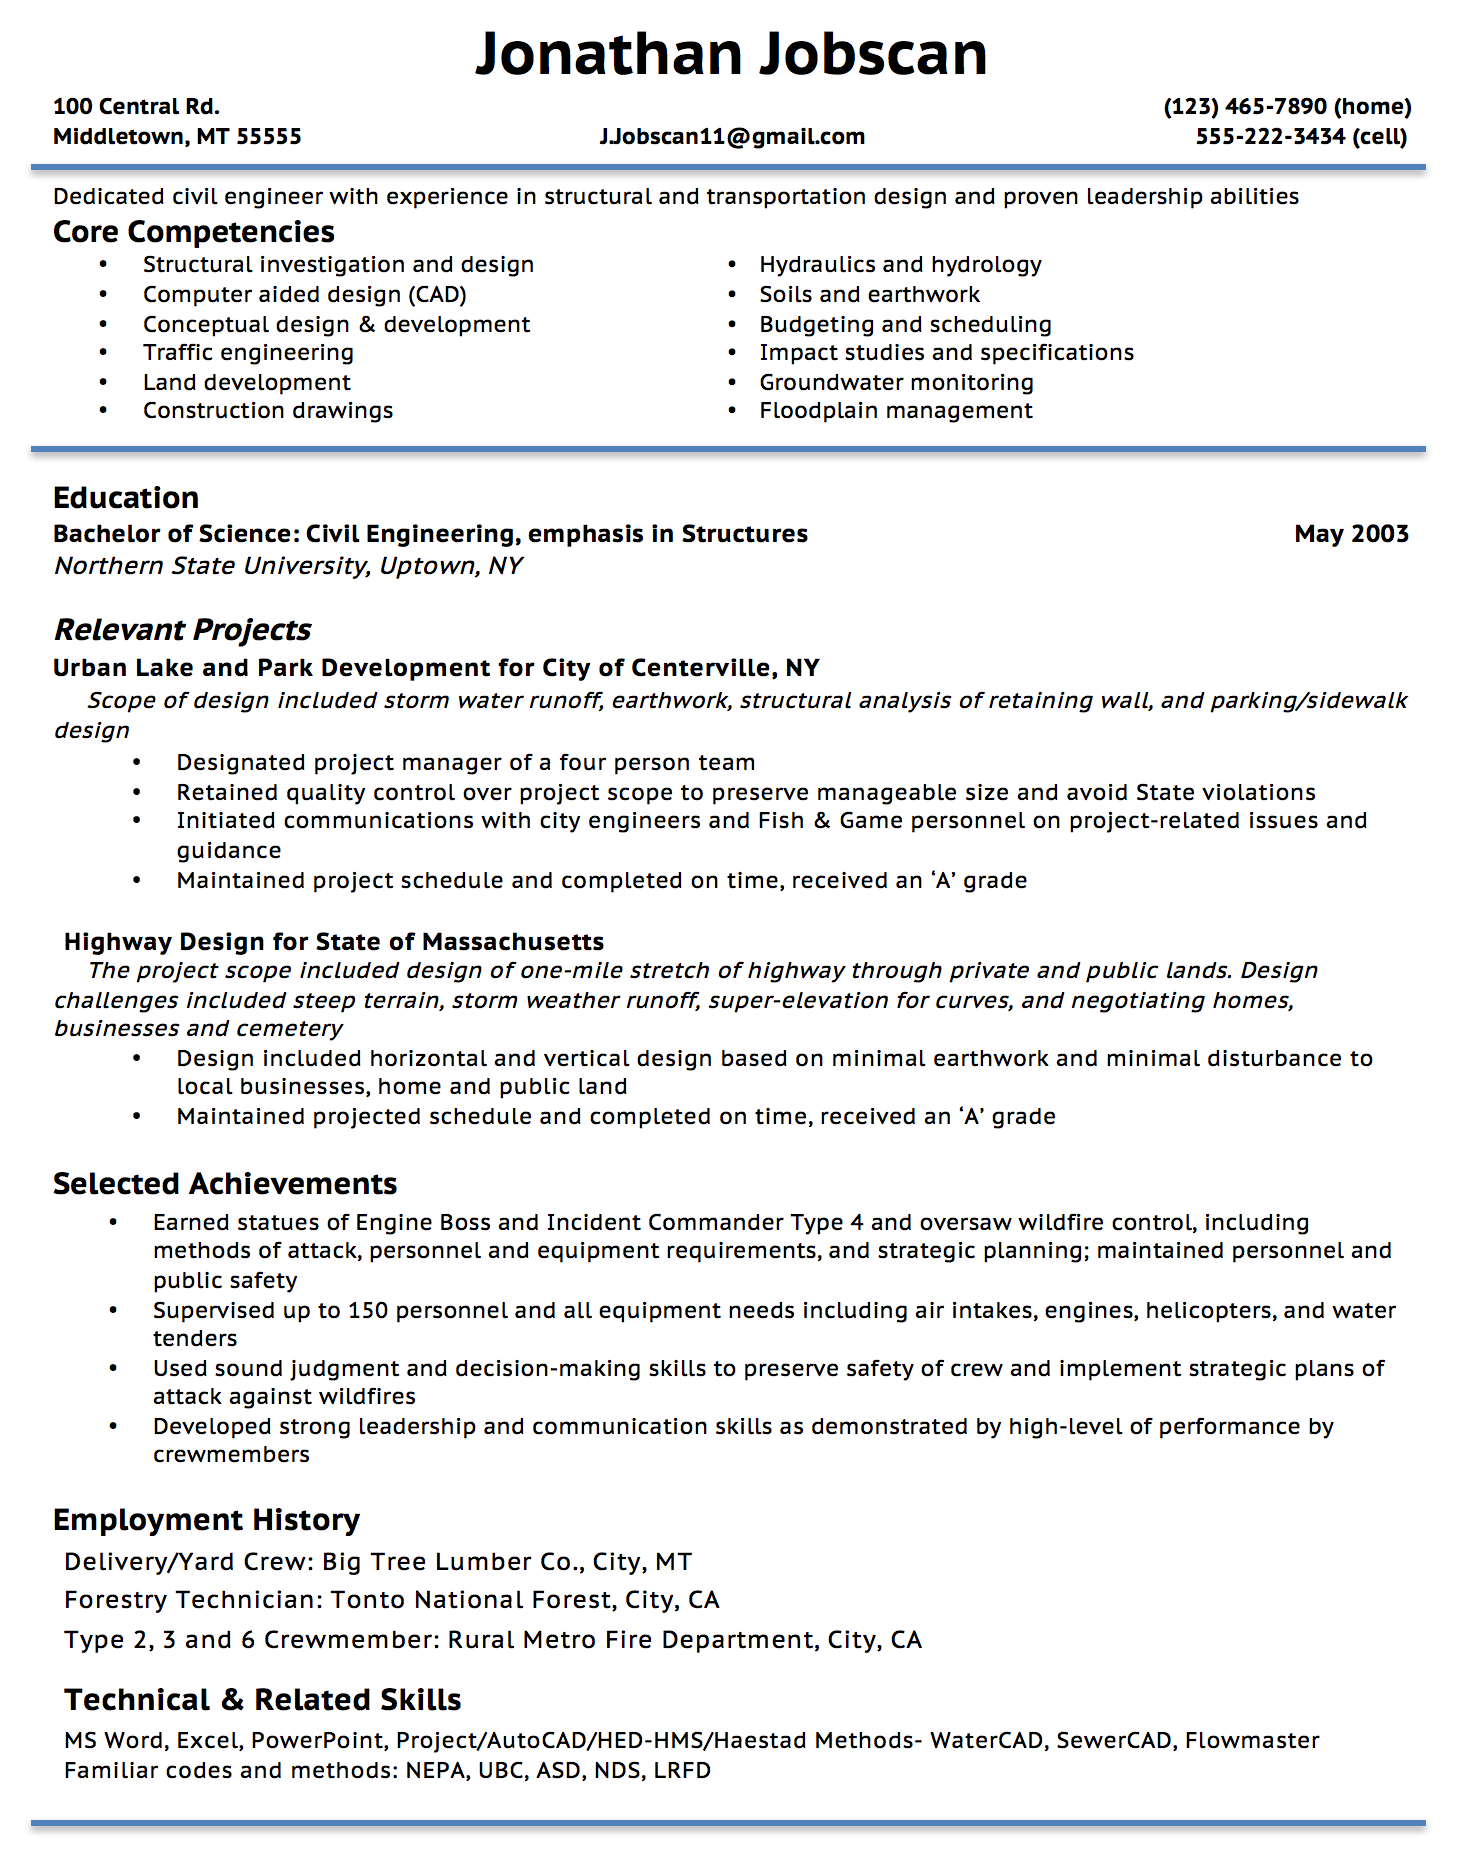 Opposenewapstandardsus  Ravishing Resume Writing Guide  Jobscan With Marvelous Example Of A Functional Resume Format With Enchanting Free Resume And Cover Letter Builder Also Sales Resume Objective Examples In Addition Sample Resume Word And College Resume Template For High School Students As Well As Resume High School Diploma Additionally Microbiologist Resume From Jobscanco With Opposenewapstandardsus  Marvelous Resume Writing Guide  Jobscan With Enchanting Example Of A Functional Resume Format And Ravishing Free Resume And Cover Letter Builder Also Sales Resume Objective Examples In Addition Sample Resume Word From Jobscanco